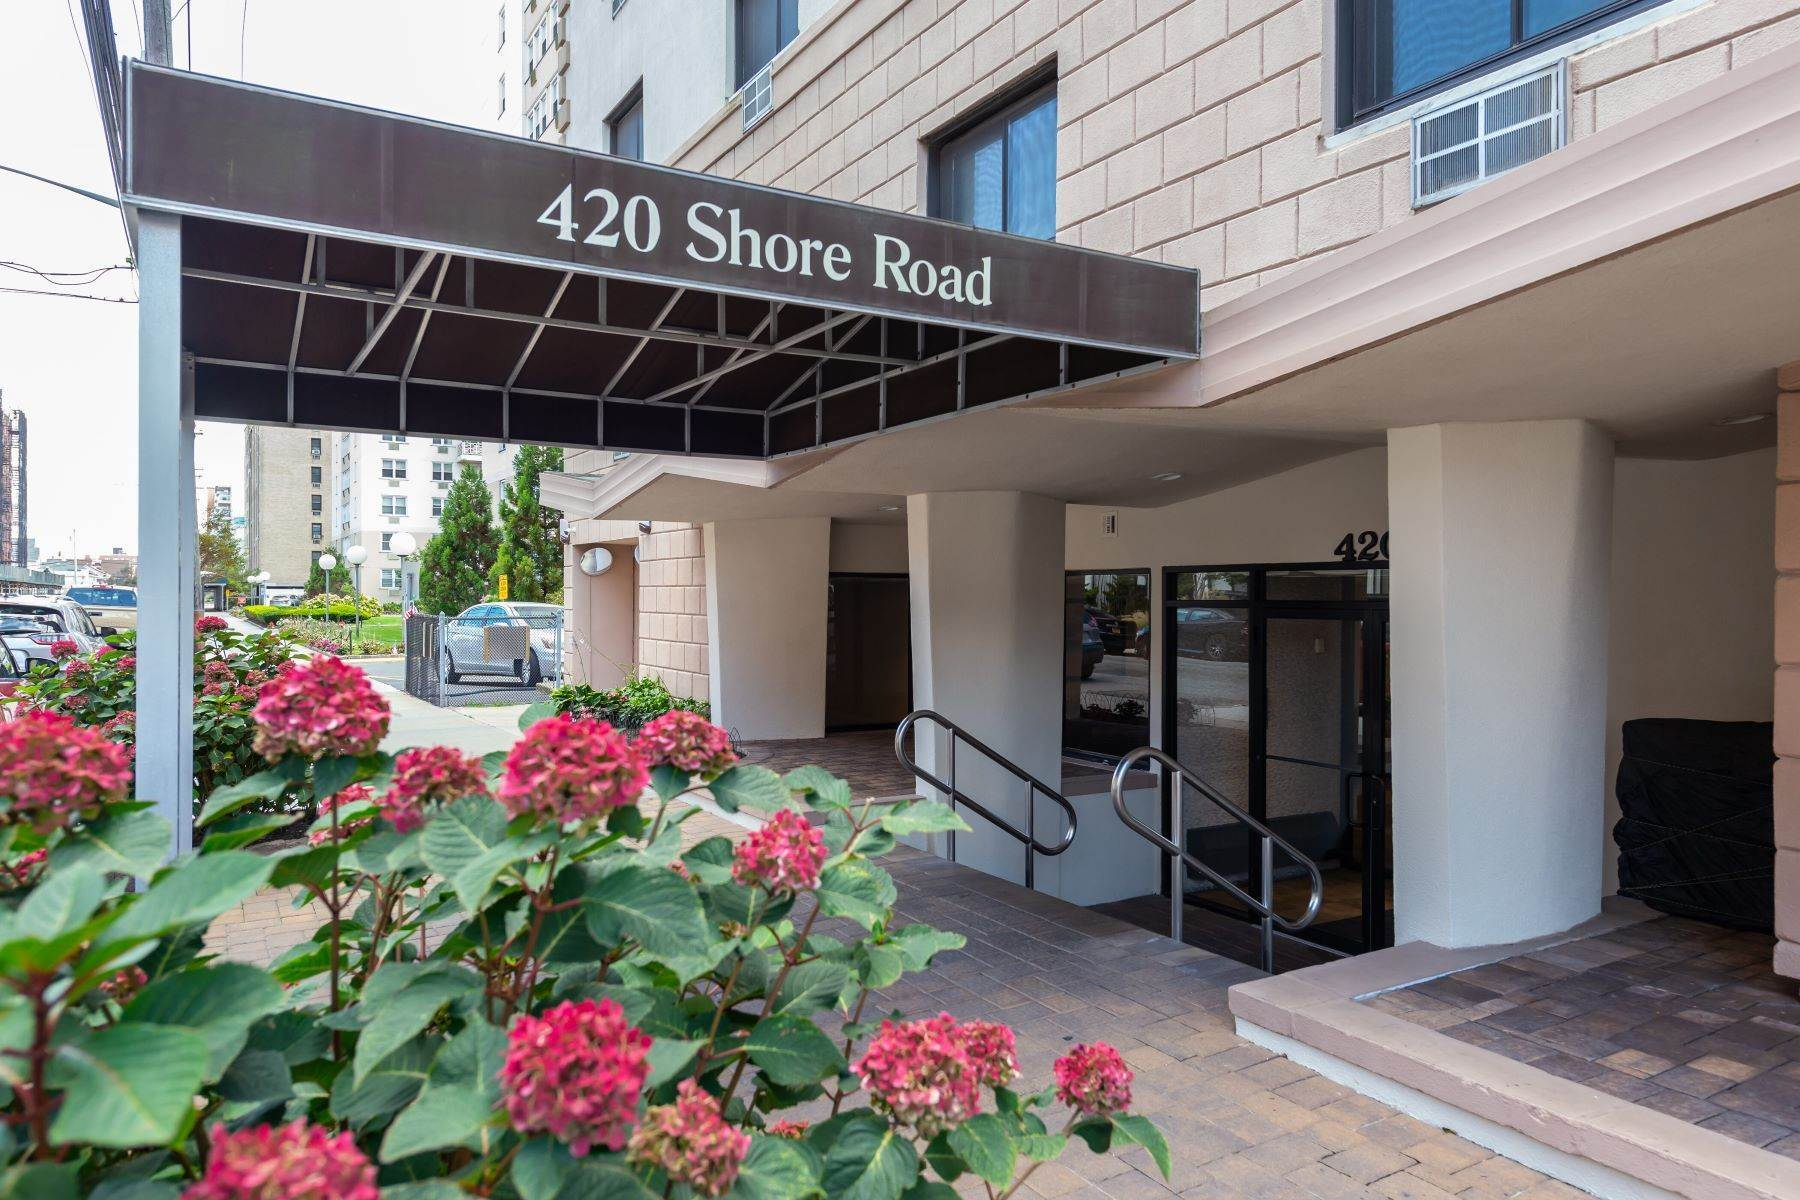 Co-op Properties for Sale at 420 Shore Road, Long Beach, Ny, 11561 420 Shore Road , 6F Long Beach, New York 11561 United States